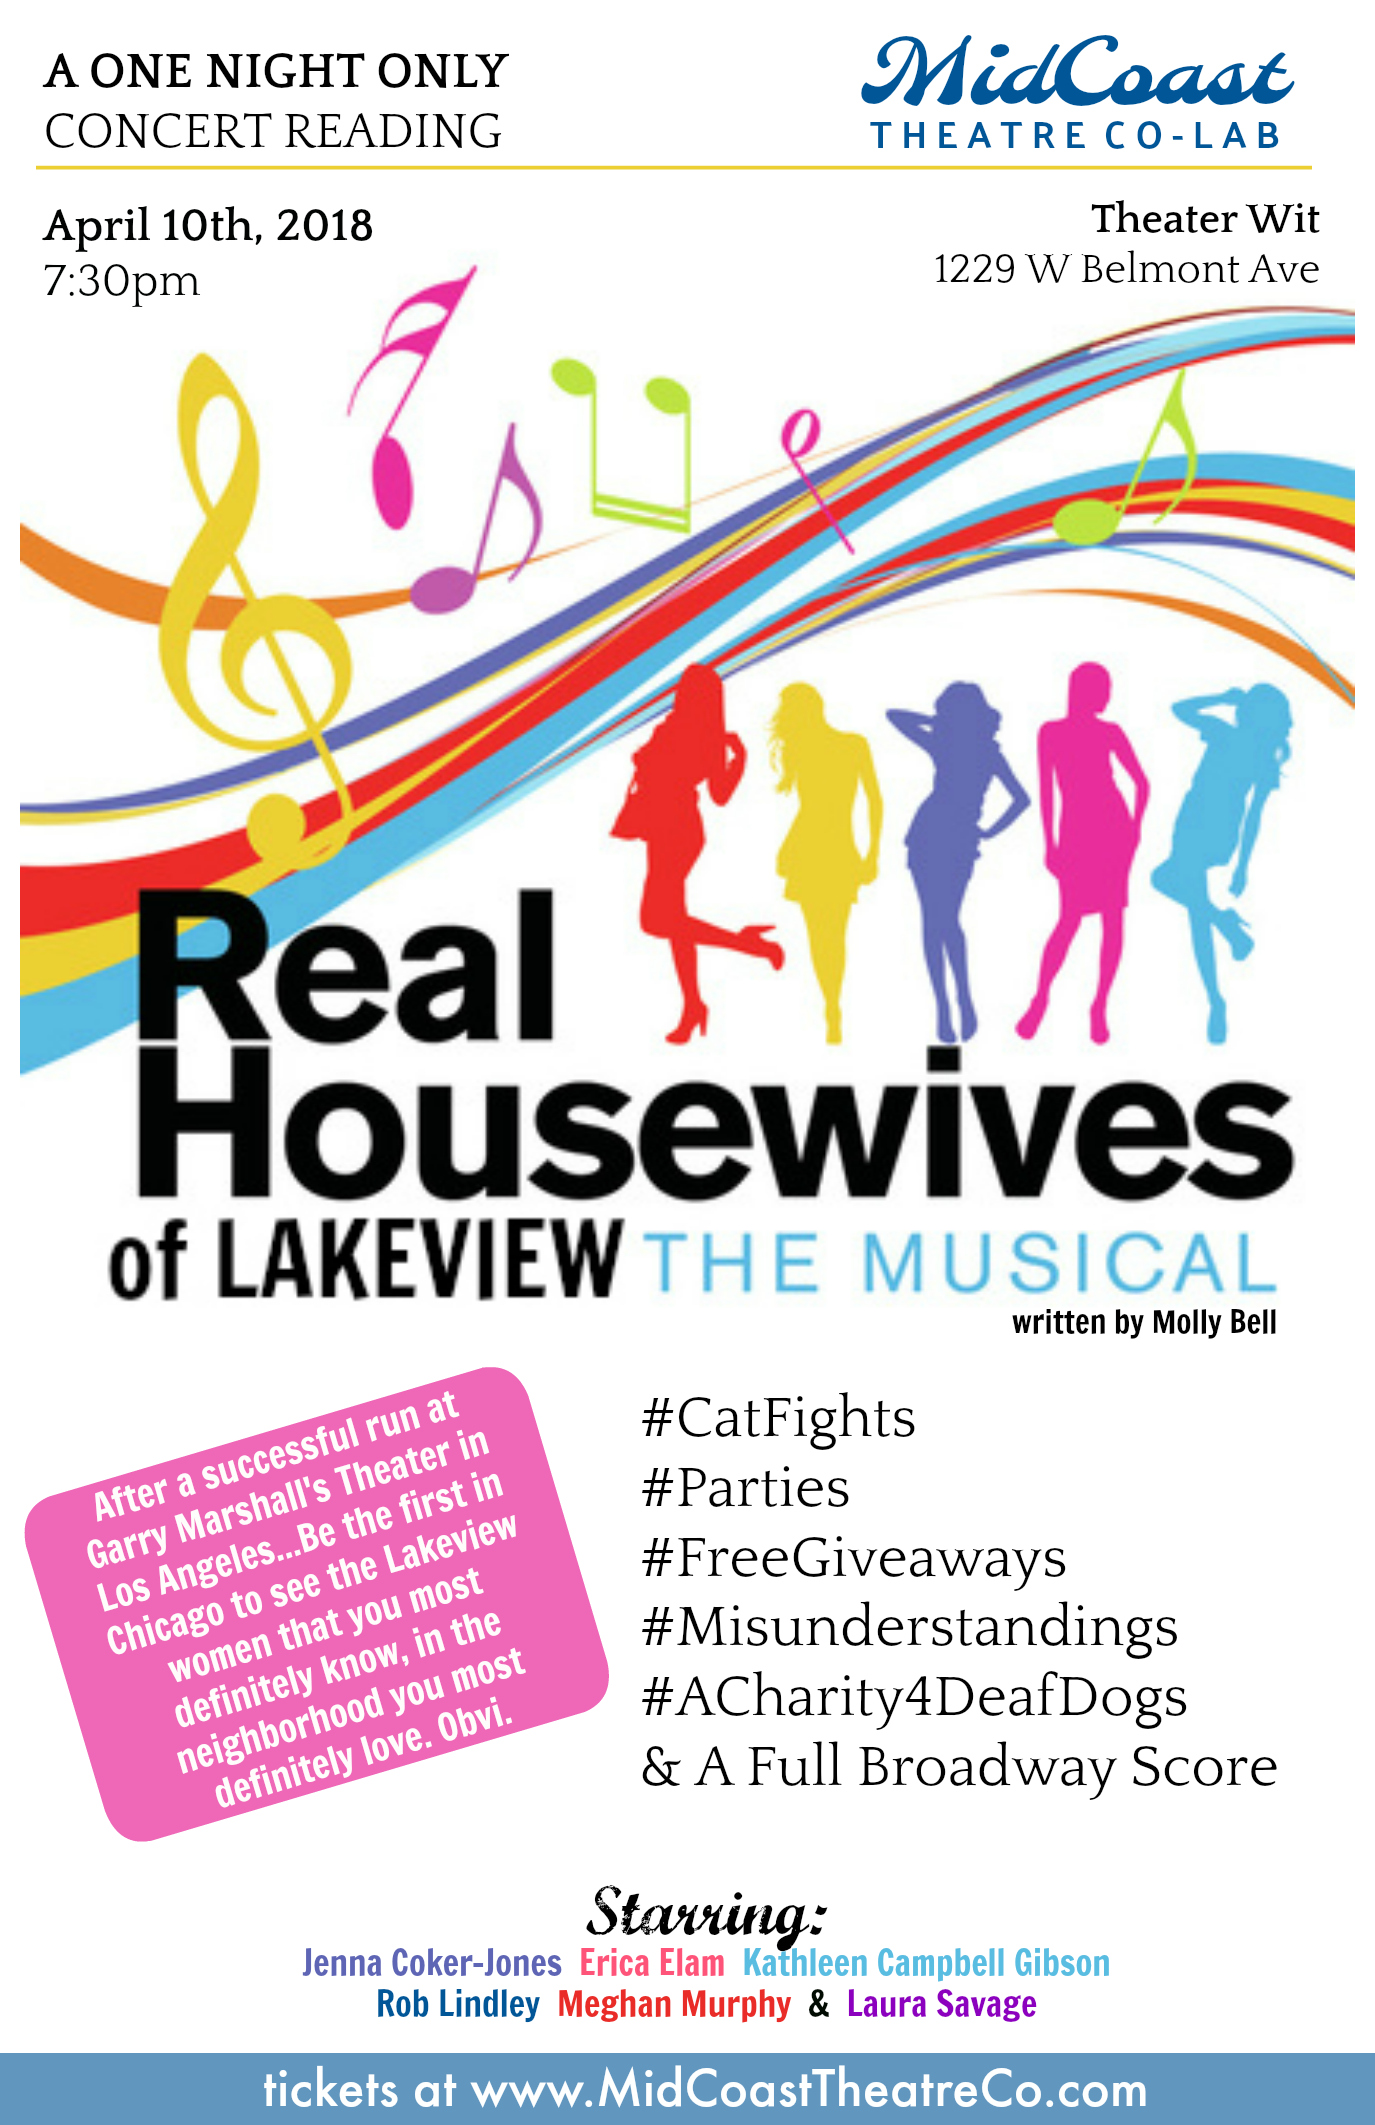 MidCoast Theatre Co-Lab @ Theater WitApril 10th, 2018 - Jenna (Artistic Director of MidCoast...) is bringing the REAL HOUSEWIVES Musical she did in Los Angeles to CHICAGO's LAKEVIEW Neighborhood for a ONE NIGHT ONLY Concert at Theater Wit in the Belmont Theater District.Jenna* will reprise her role as Penny Quinoa St Simone & Directing a badass group of Chicago Actors including Rob Lindley*, Erica Elam*, Kathleen Campbell Gibson*, Christina Hall*, Laura Savage* & your host Sawyer Smith*.*Members of Actor's Equity Association